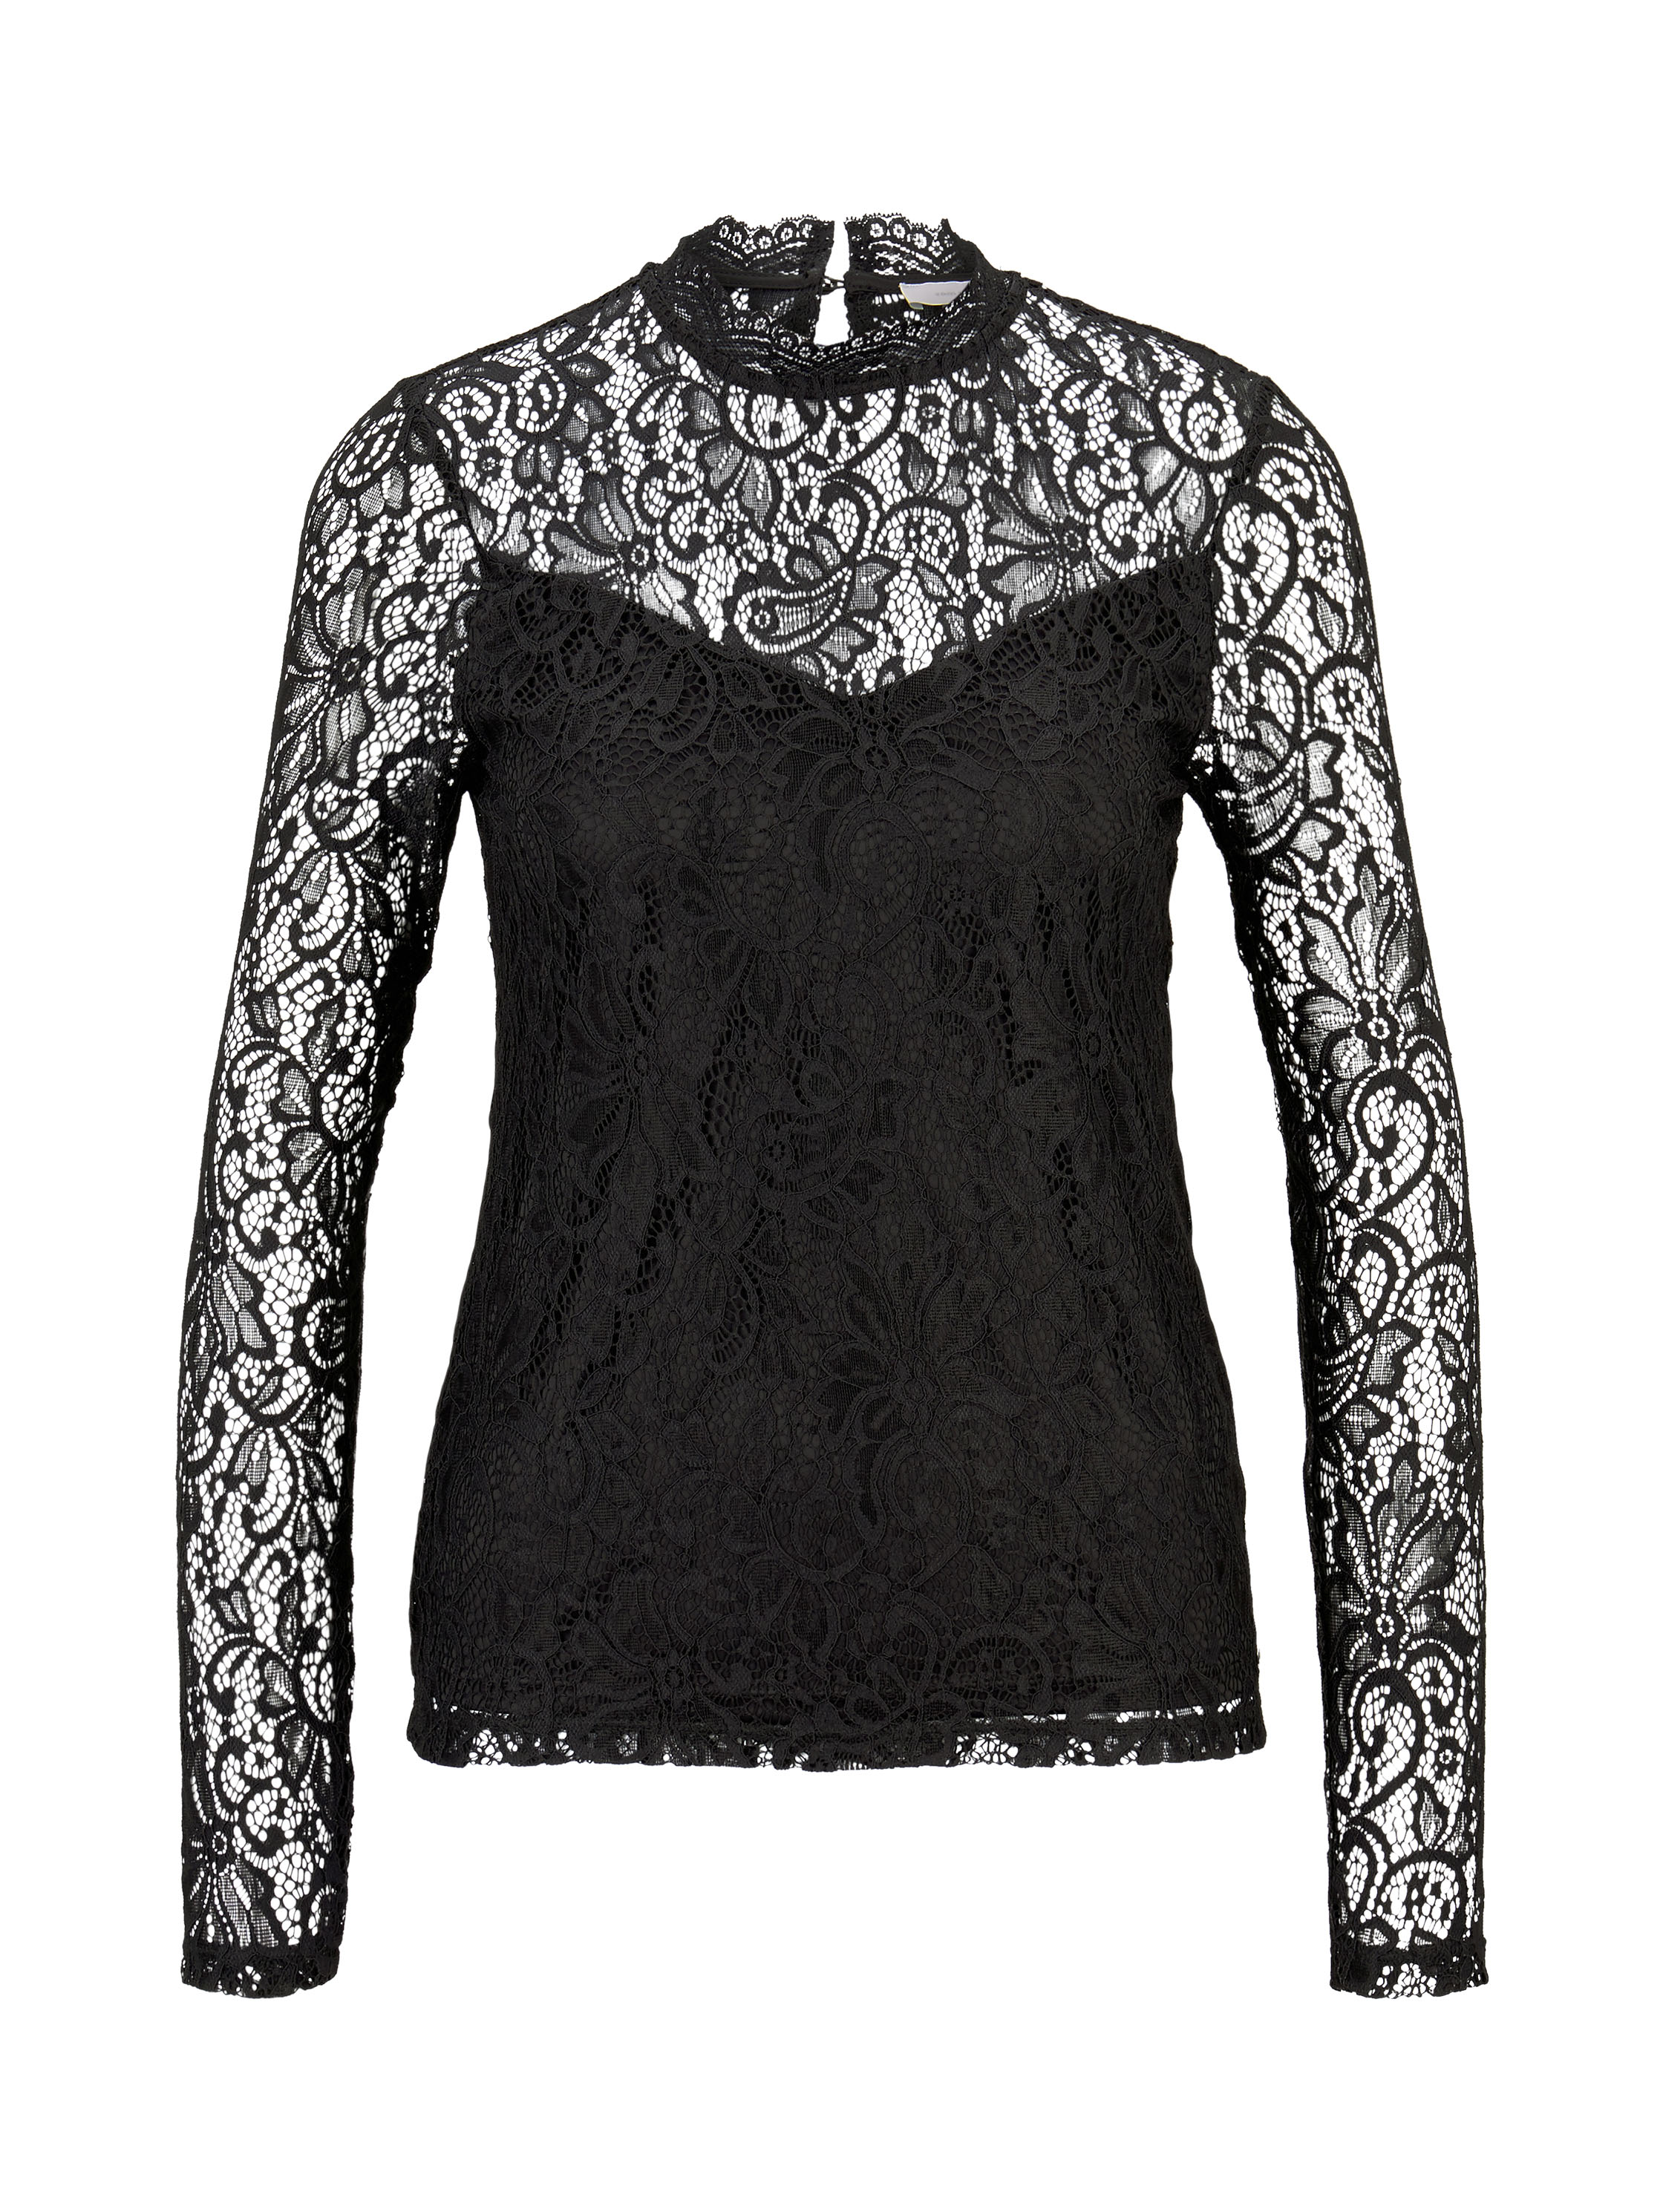 all over lace blouse, Deep Black                    Grey,